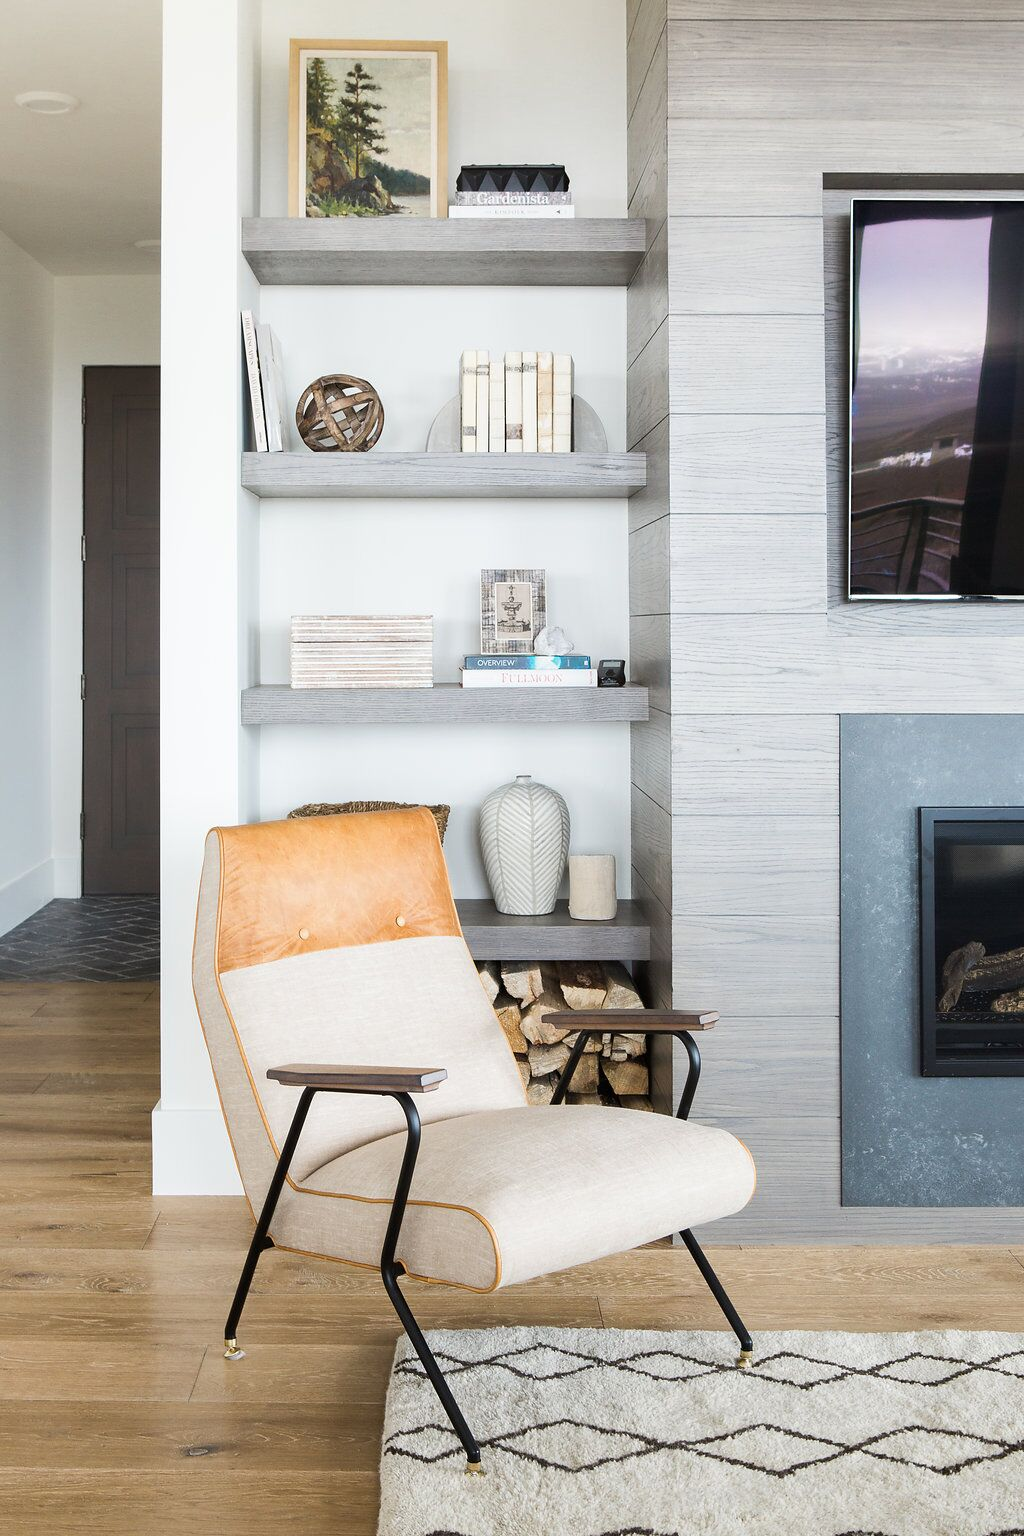 Modern white chair with bronze top in front of shelves